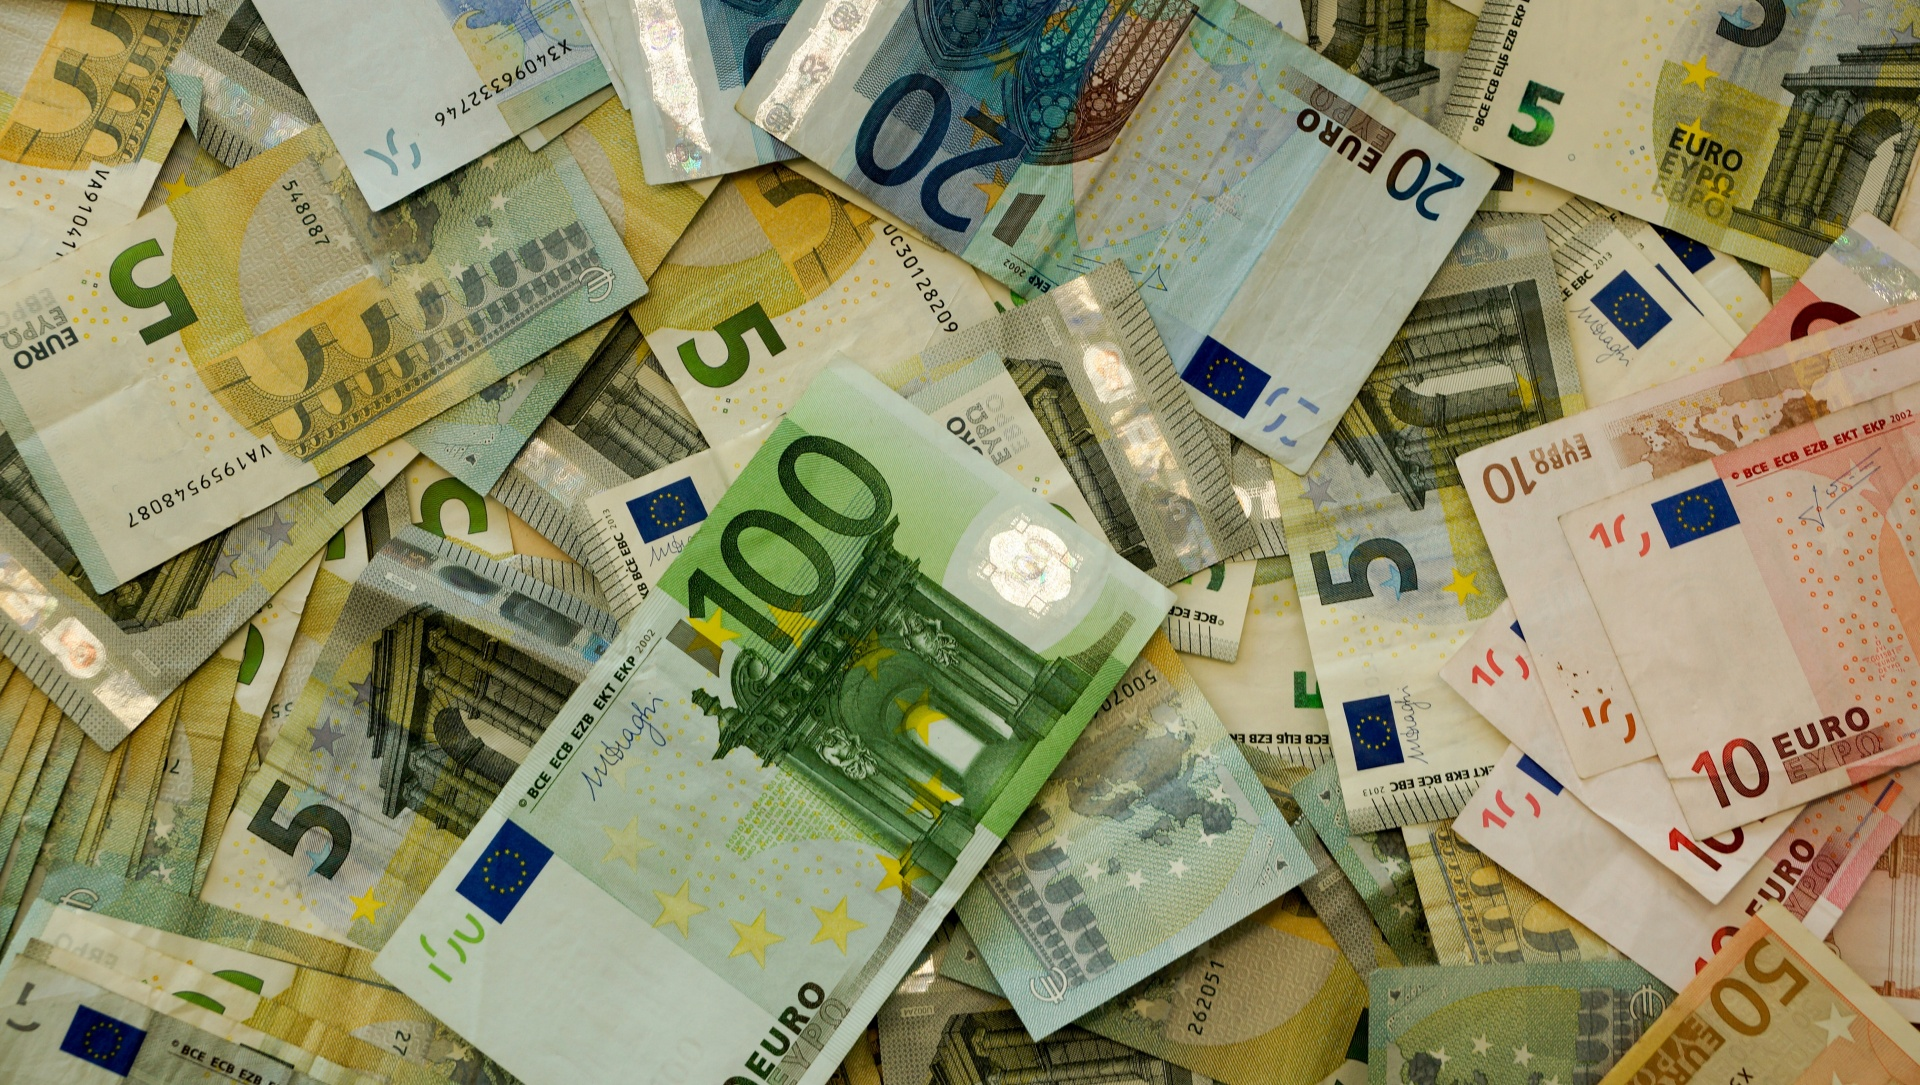 A pile of cash in Euros.